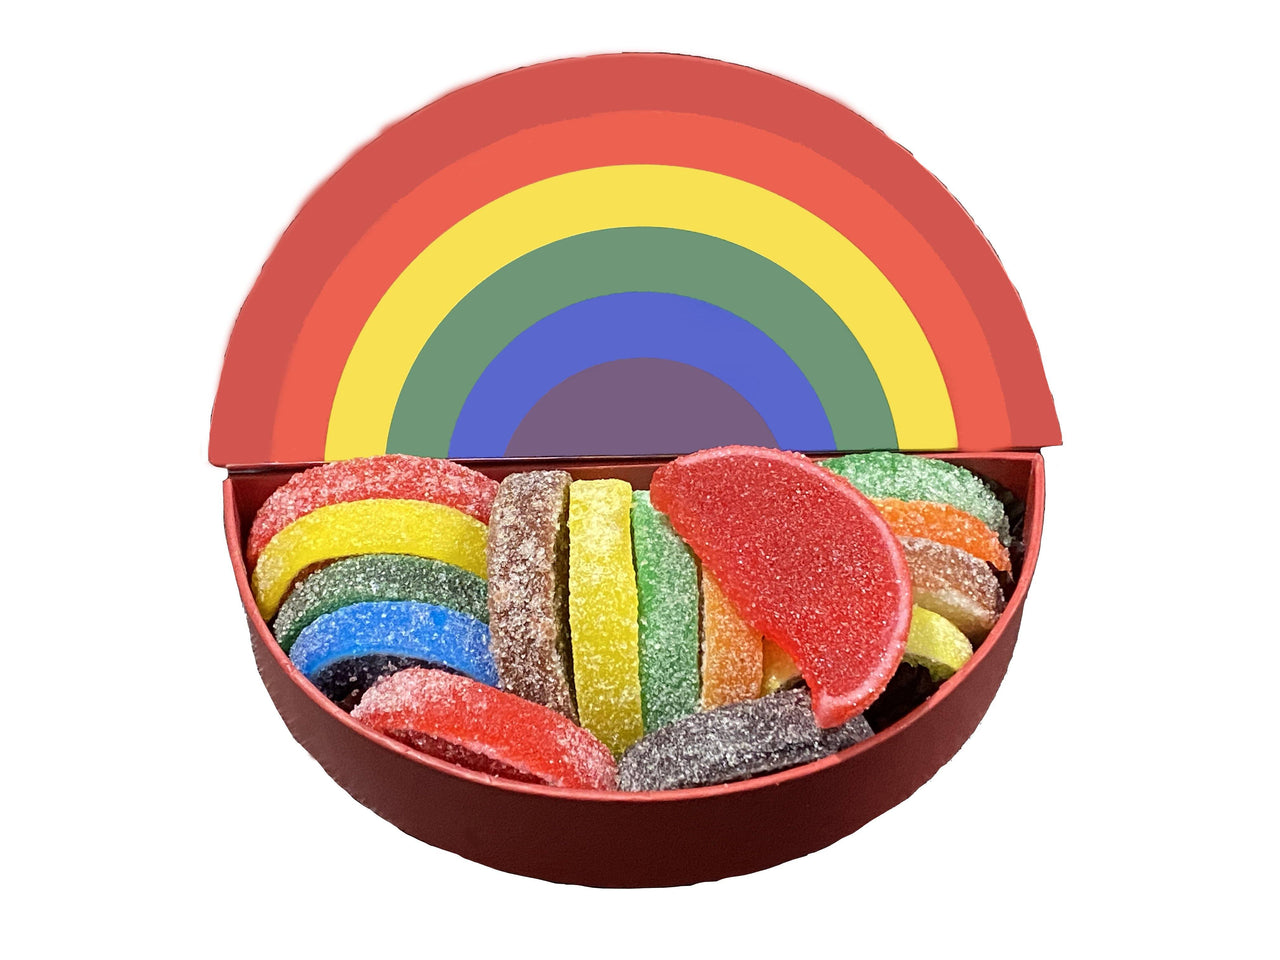 PRIDE Candy Slices with Rainbow Novelty Box (4476379005043)